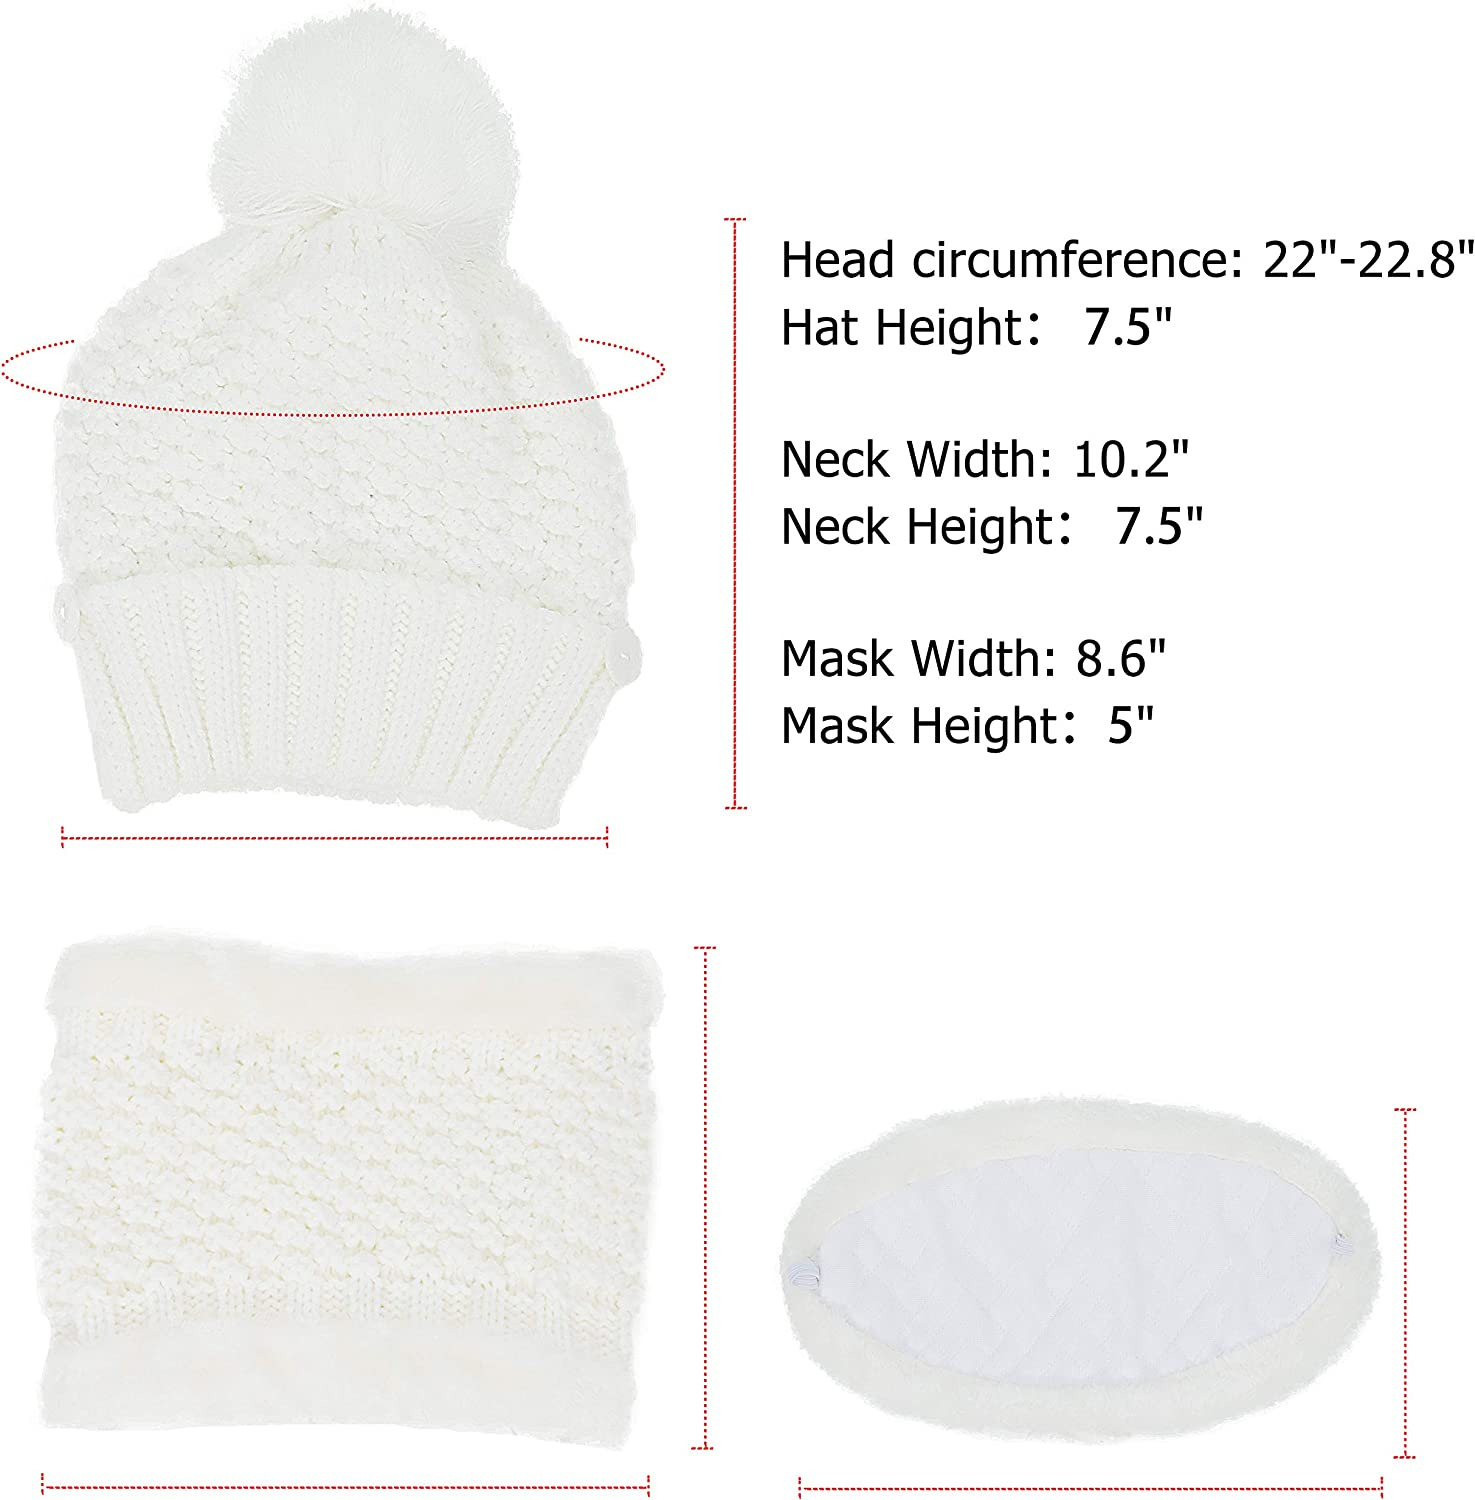 Winter Beanie Hat Scarf and Mask Set for Women, Thick Warm Slouchy Knit Fleece Lined Skull Knit Cap Scarf Mouth Mask 3 Pieces